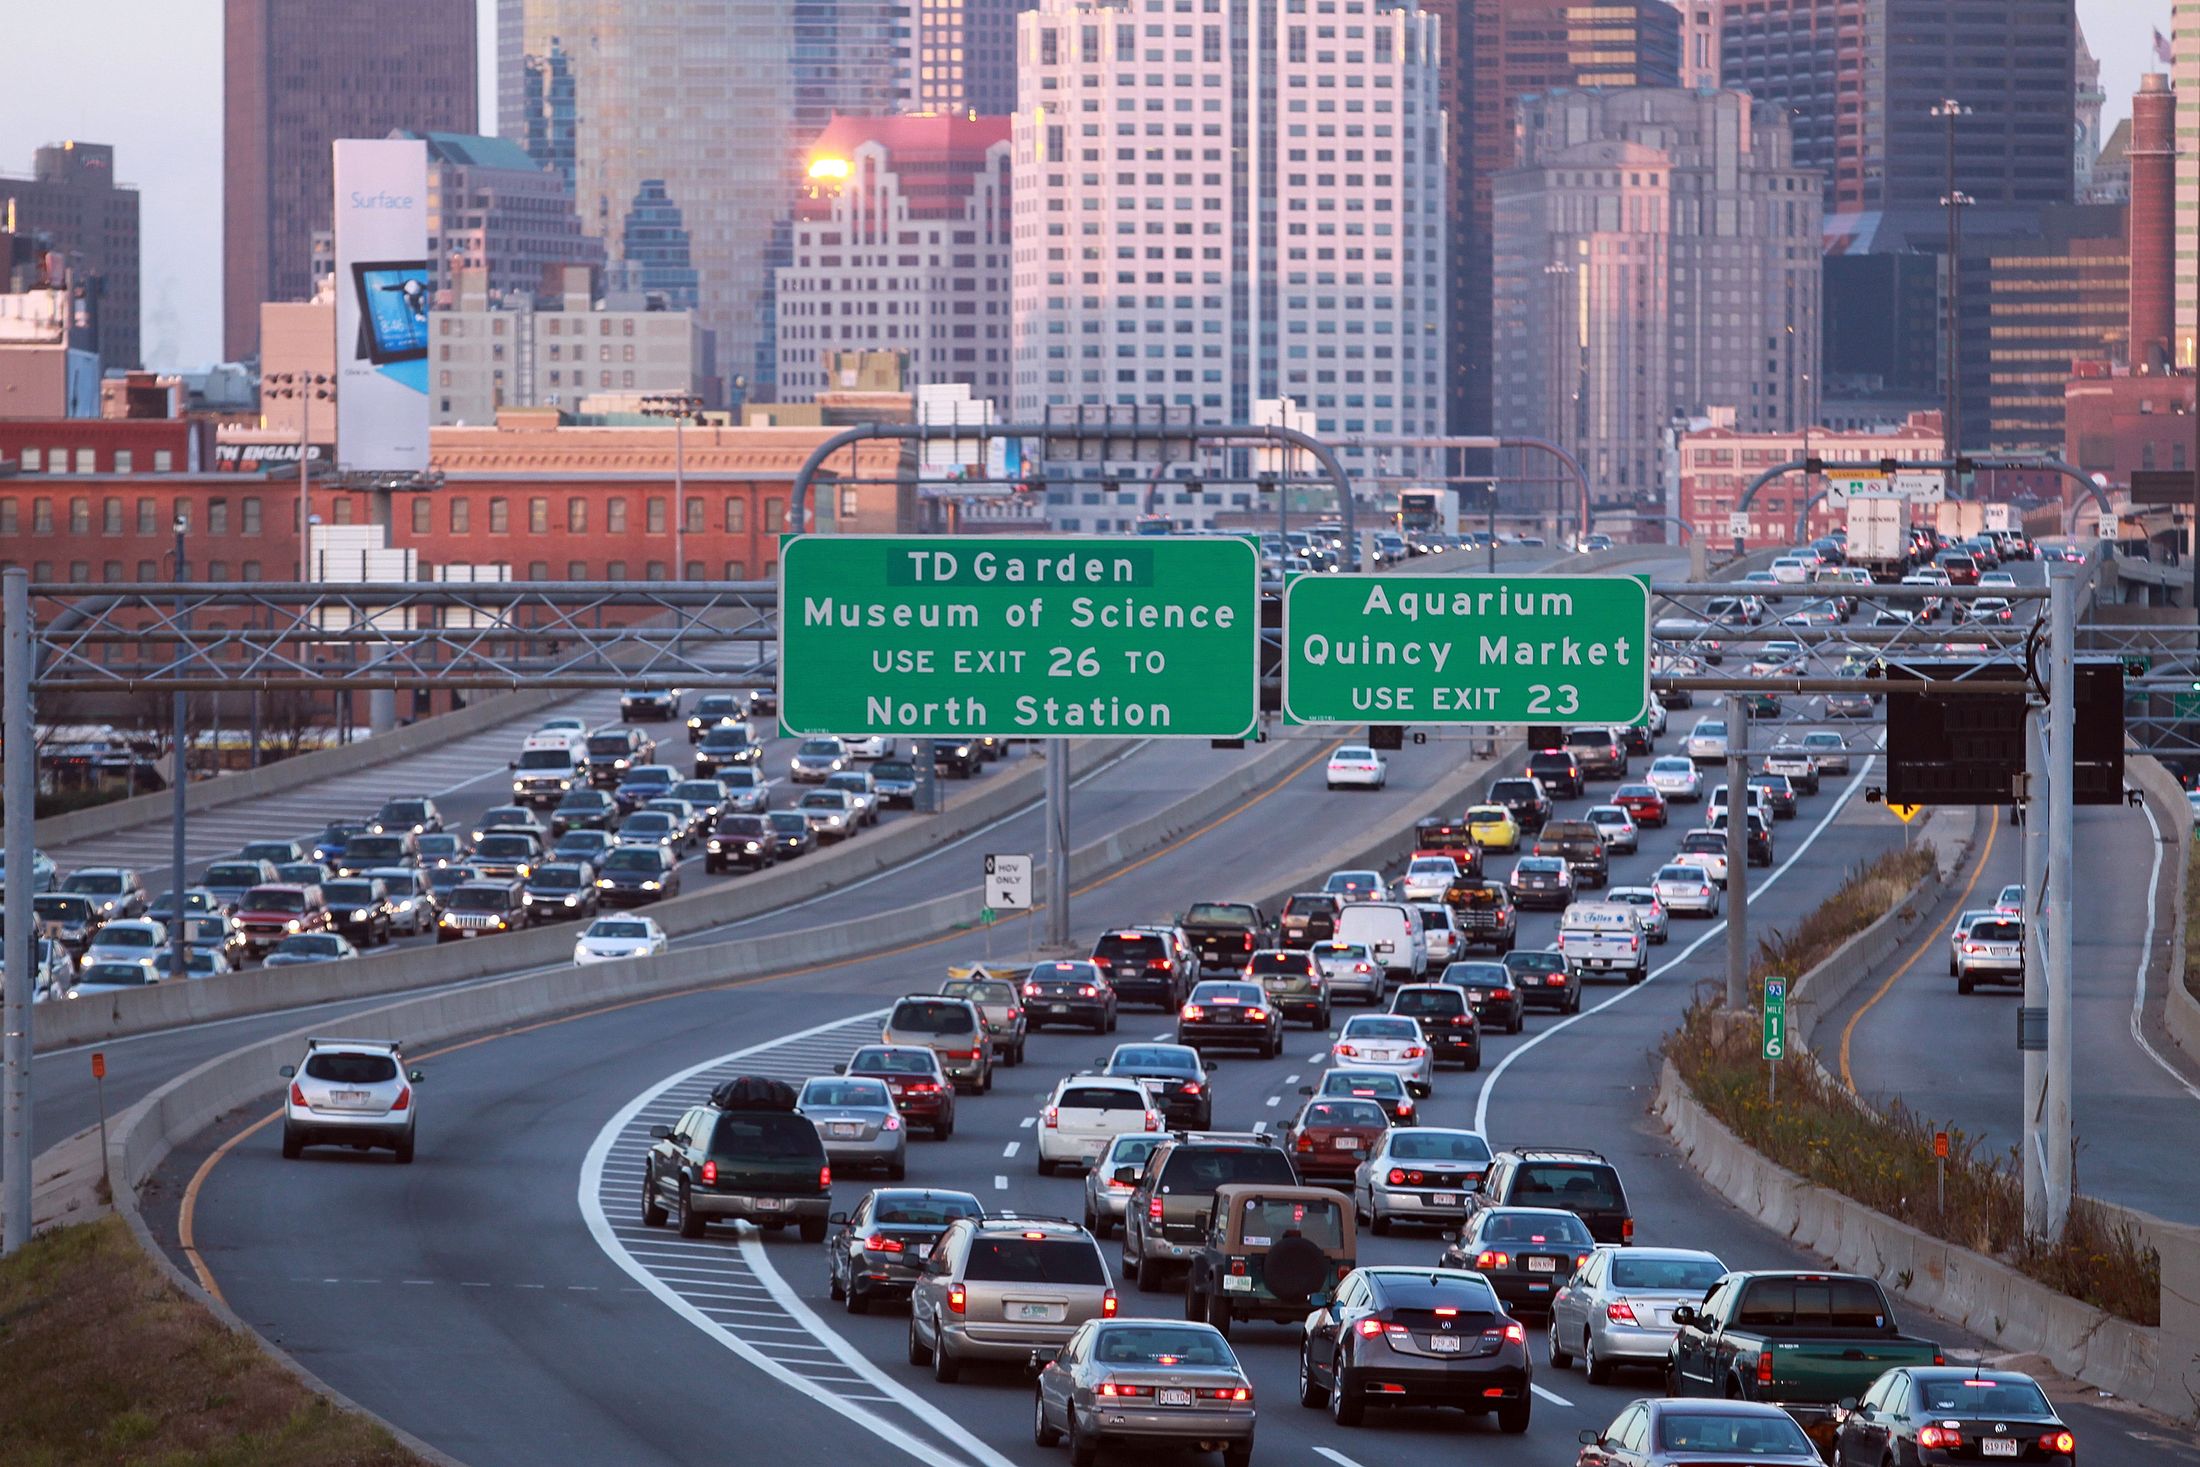 Five years after the completion of the world's most expensive highway project, and in the absence of adequate transit improvements, the region's major north-south highway remains gridlocked in both directions. [© Boston Herald Staff Photo by Matt Stone, 11/21/2012]